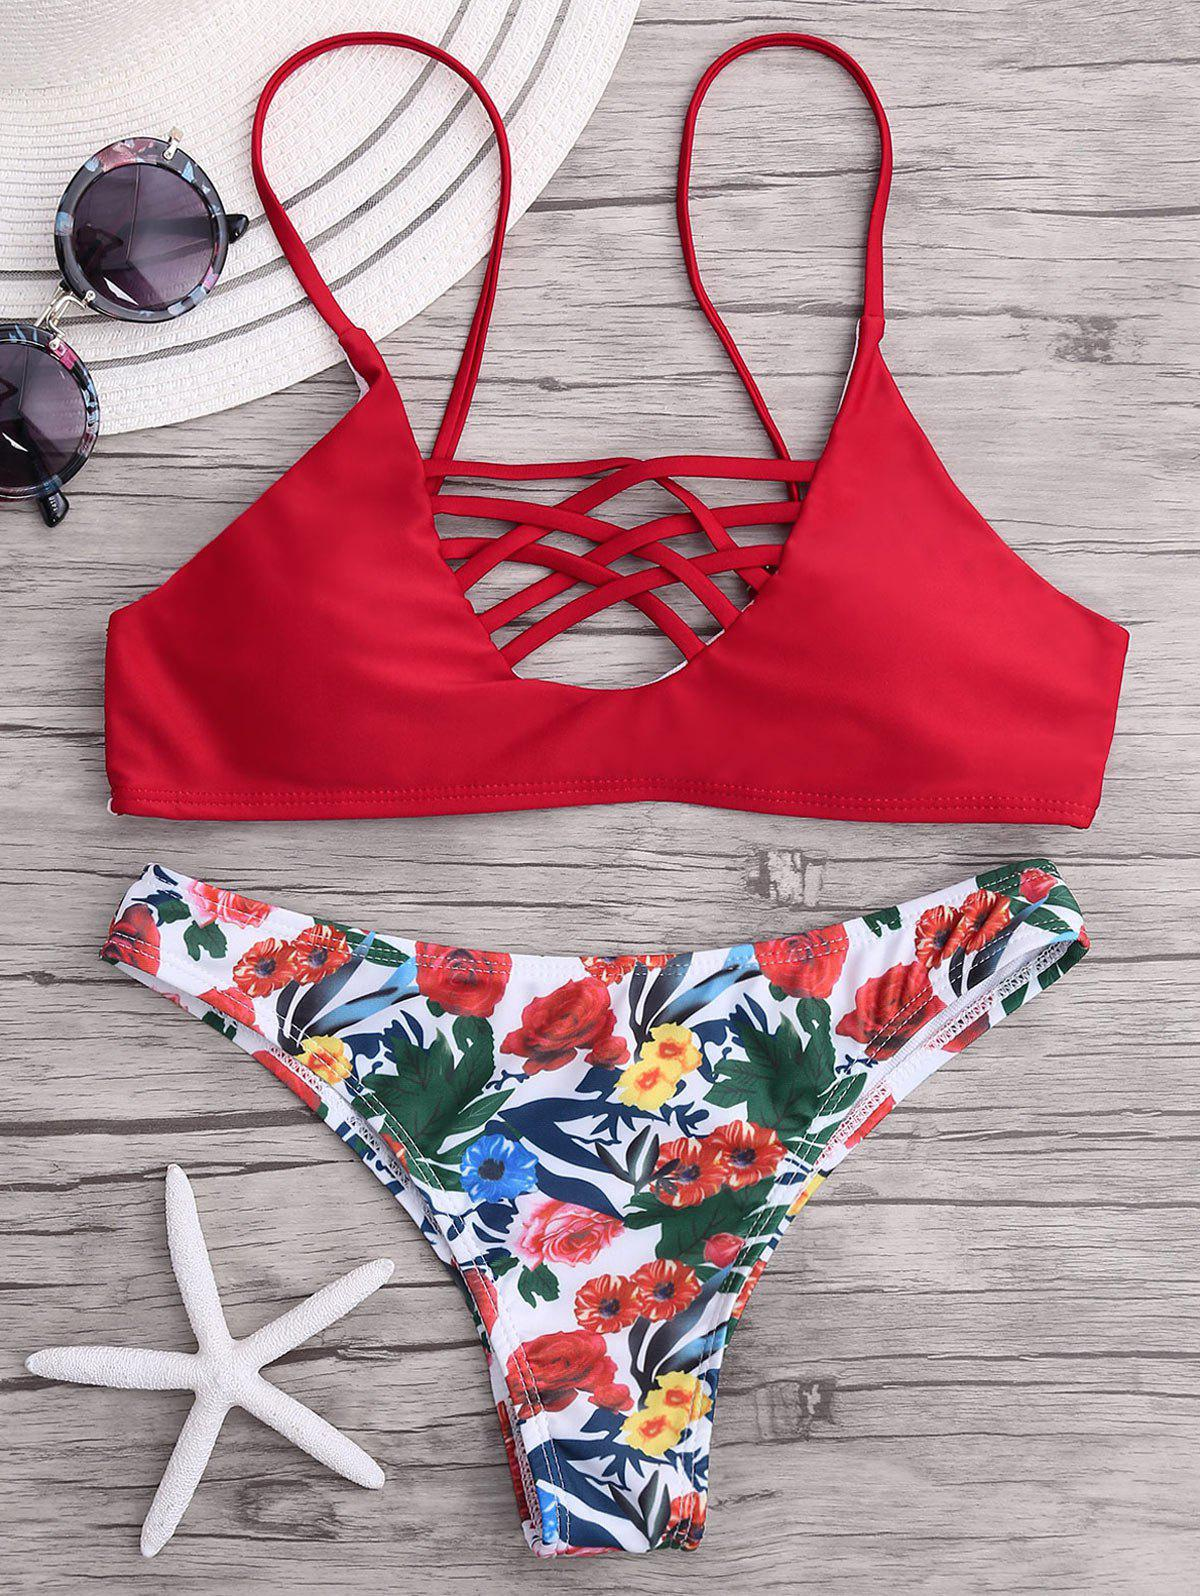 Cross Strappy Floral Bikini SetWOMEN<br><br>Size: S; Color: RED; Swimwear Type: Bikini; Gender: For Women; Material: Polyester,Spandex; Bra Style: Padded; Support Type: Wire Free; Neckline: Spaghetti Straps; Pattern Type: Floral; Embellishment: Strappy; Waist: Natural; Elasticity: Micro-elastic; Weight: 0.2000kg; Package Contents: 1 x Bra  1 x Panties;